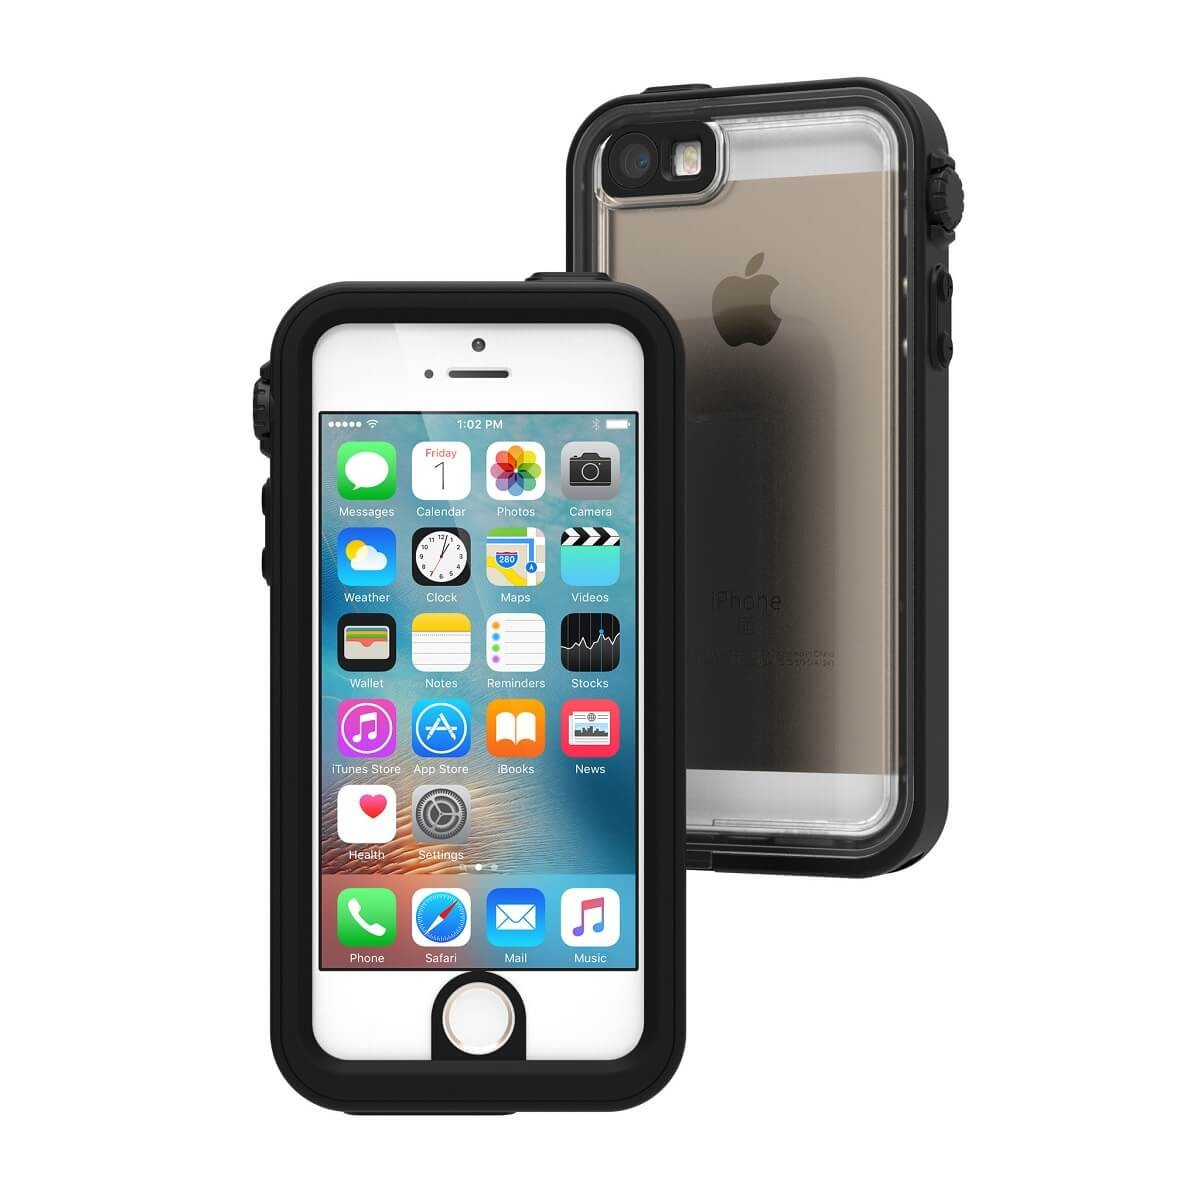 huge discount 83584 97390 Catalyst Waterproof case for iPhone 5/5S/SE - Stealth Black